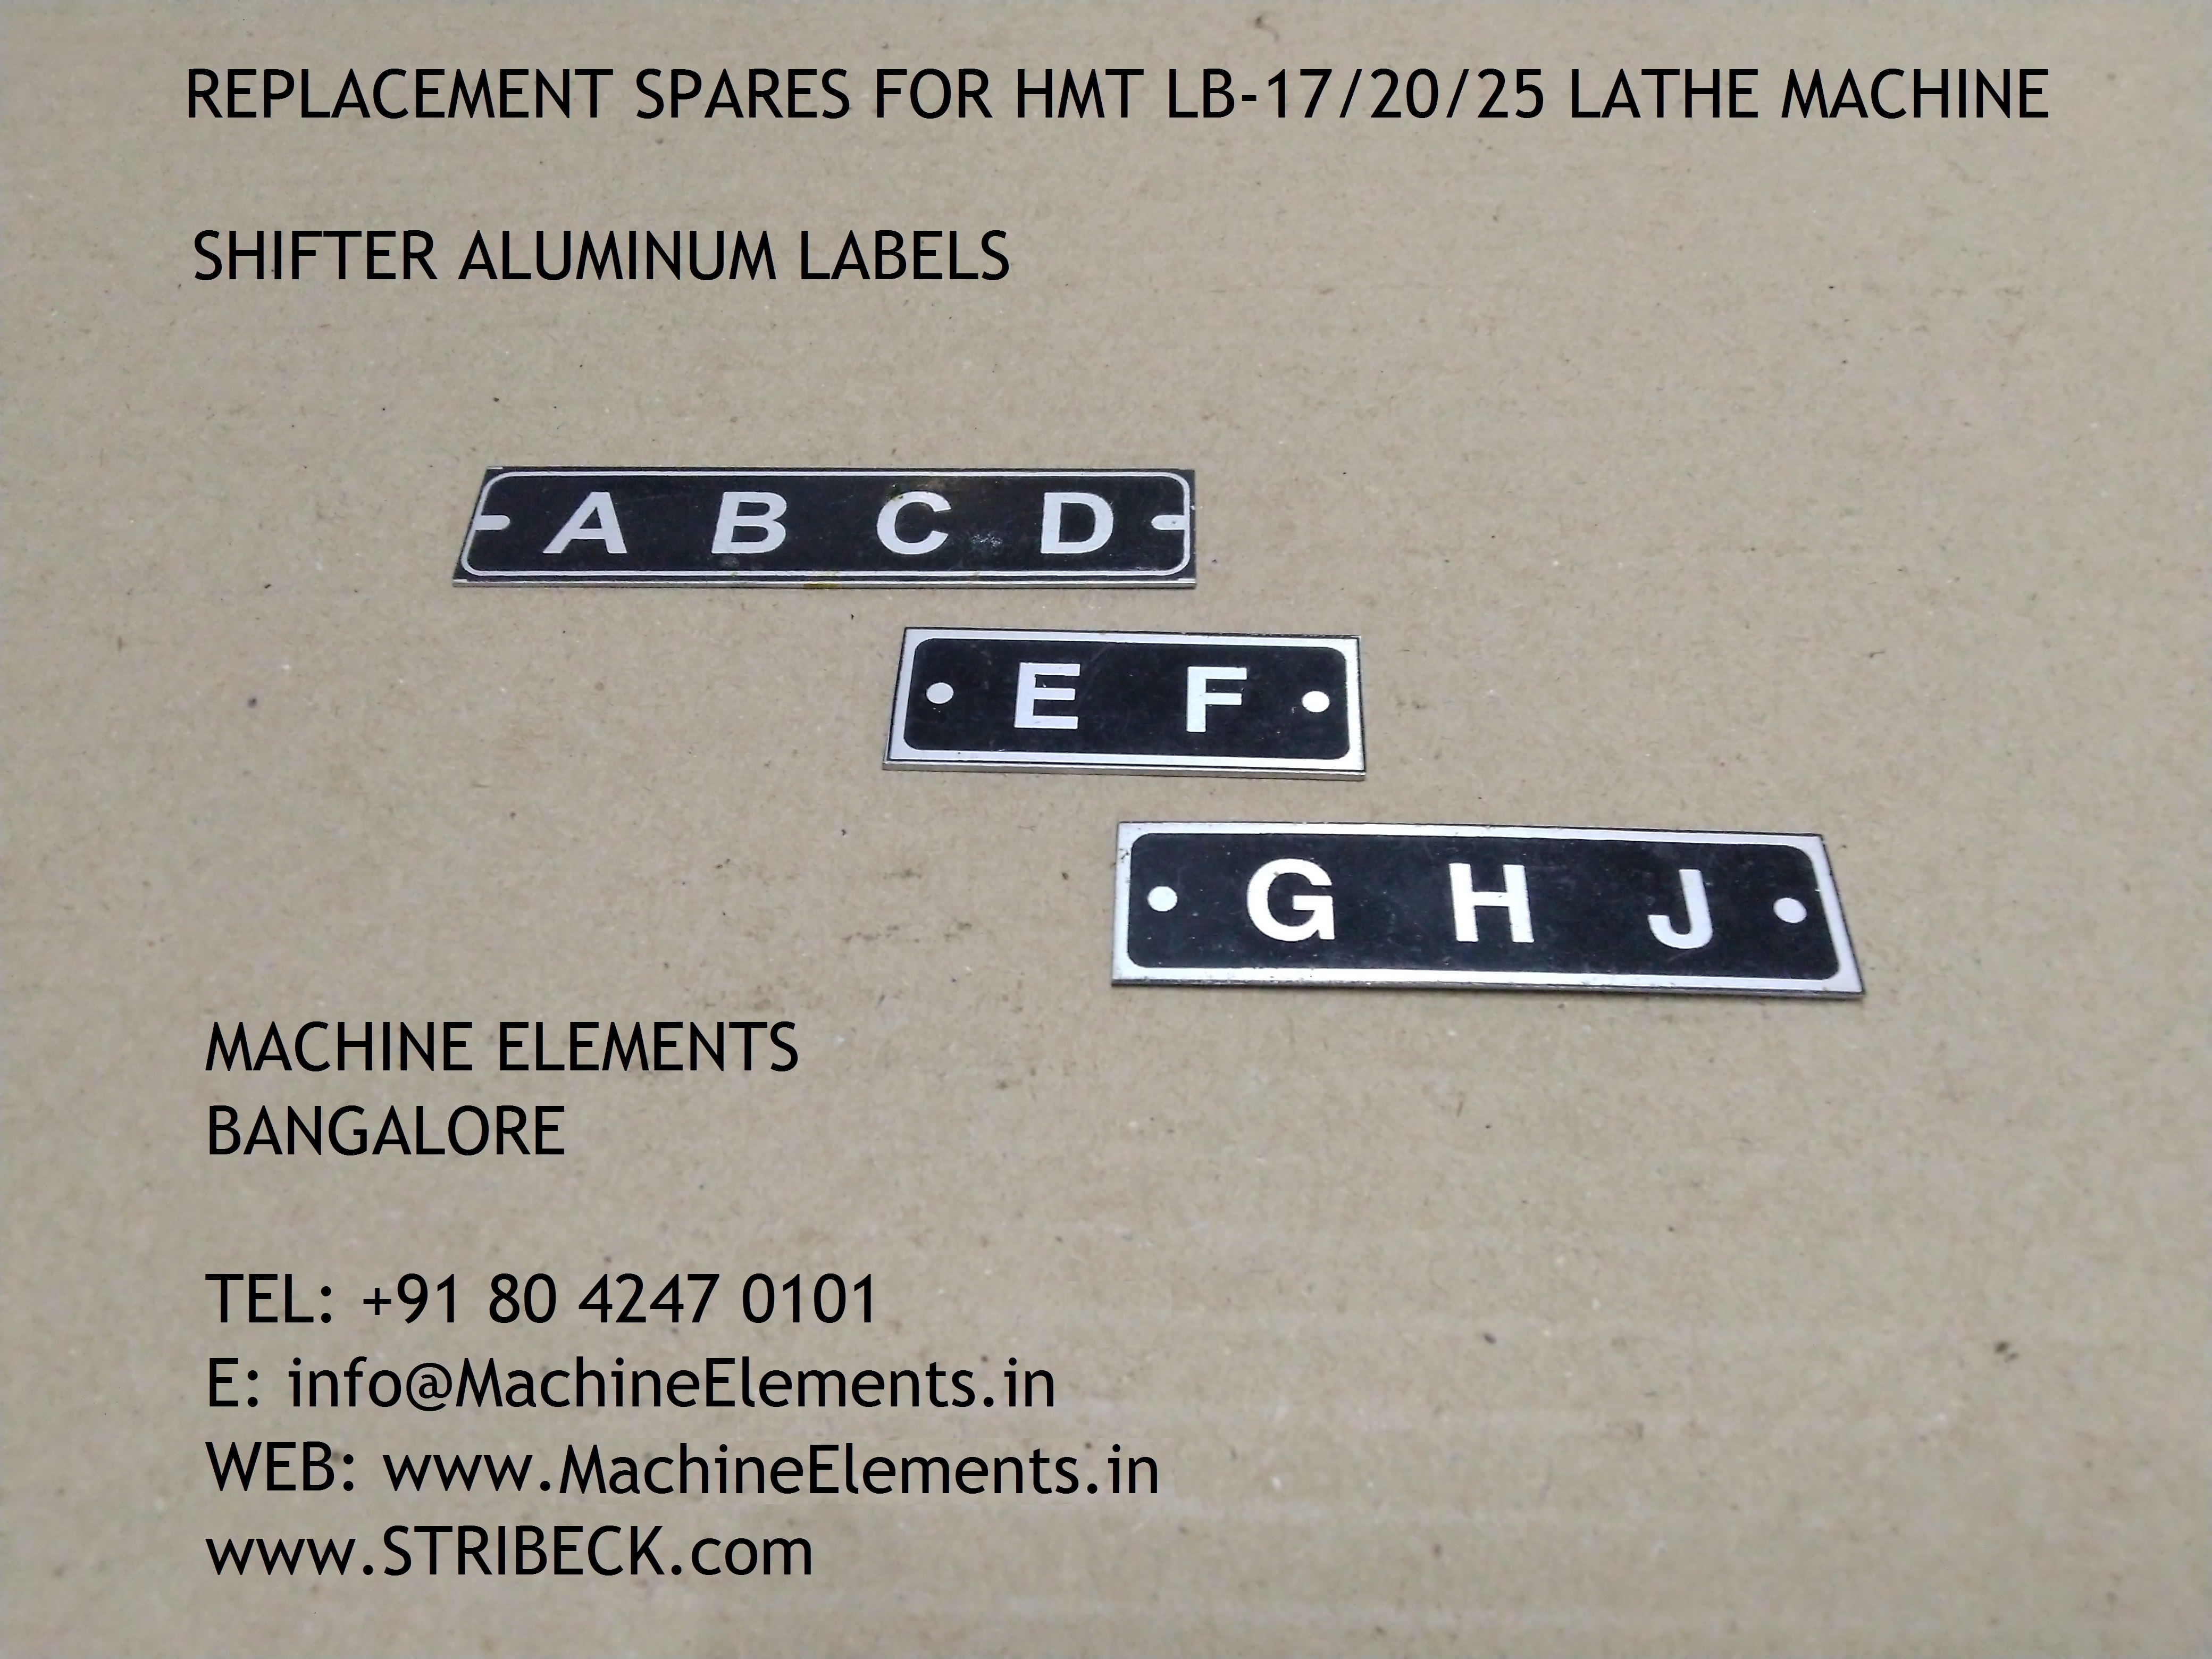 SHIFTER ALUMINUM LABELS